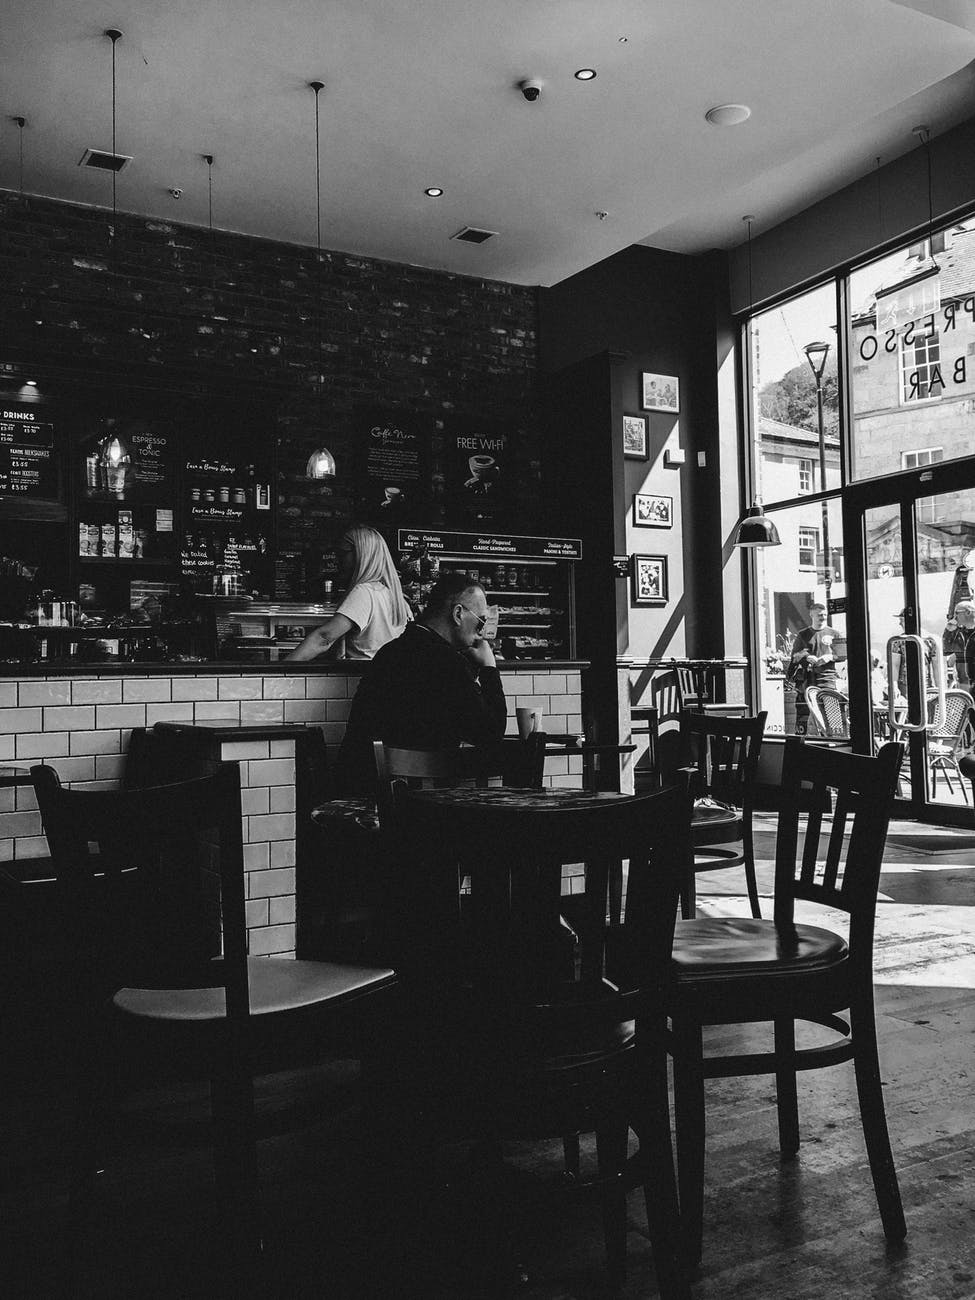 A man seating alone in a bar | Photo: Pexel